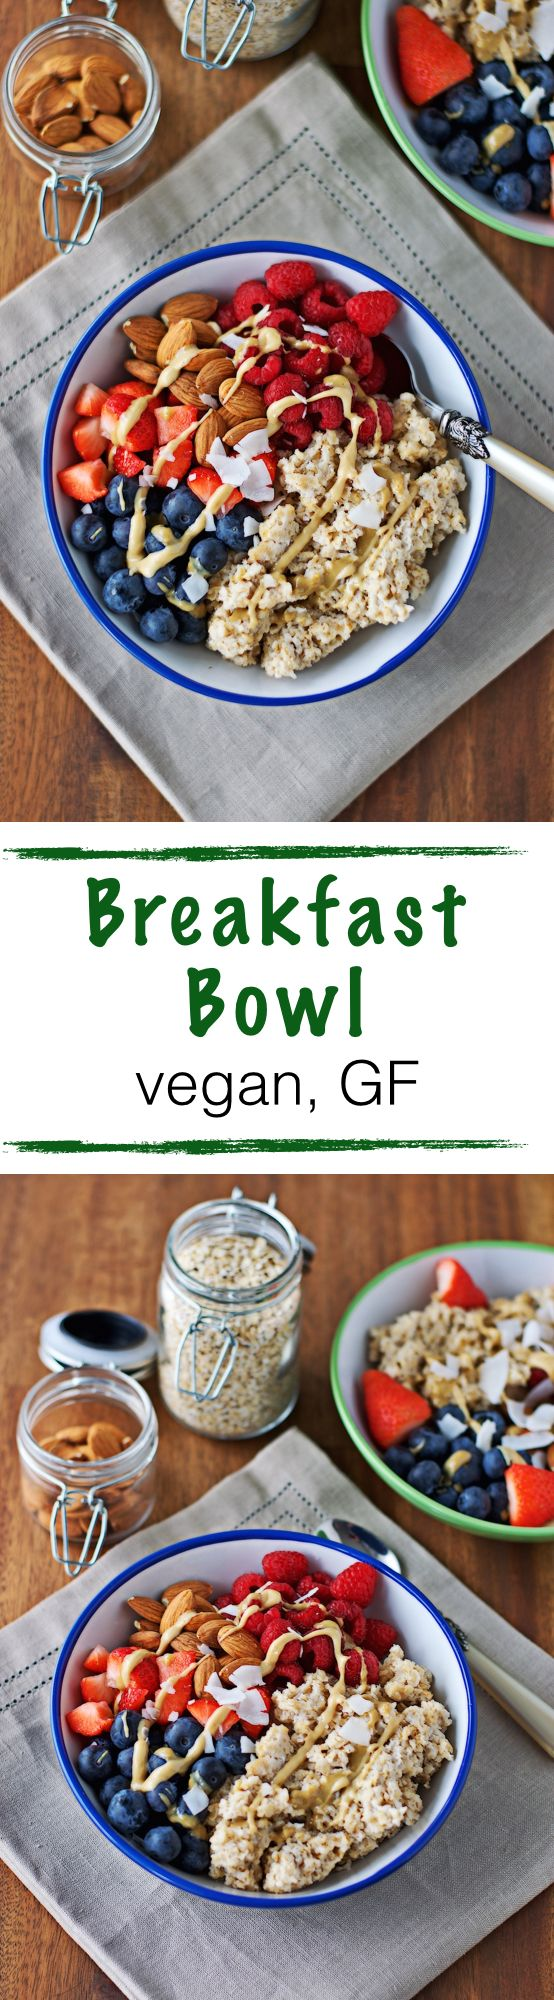 breakfast bowl vegan gluten free recipe healthy. Black Bedroom Furniture Sets. Home Design Ideas